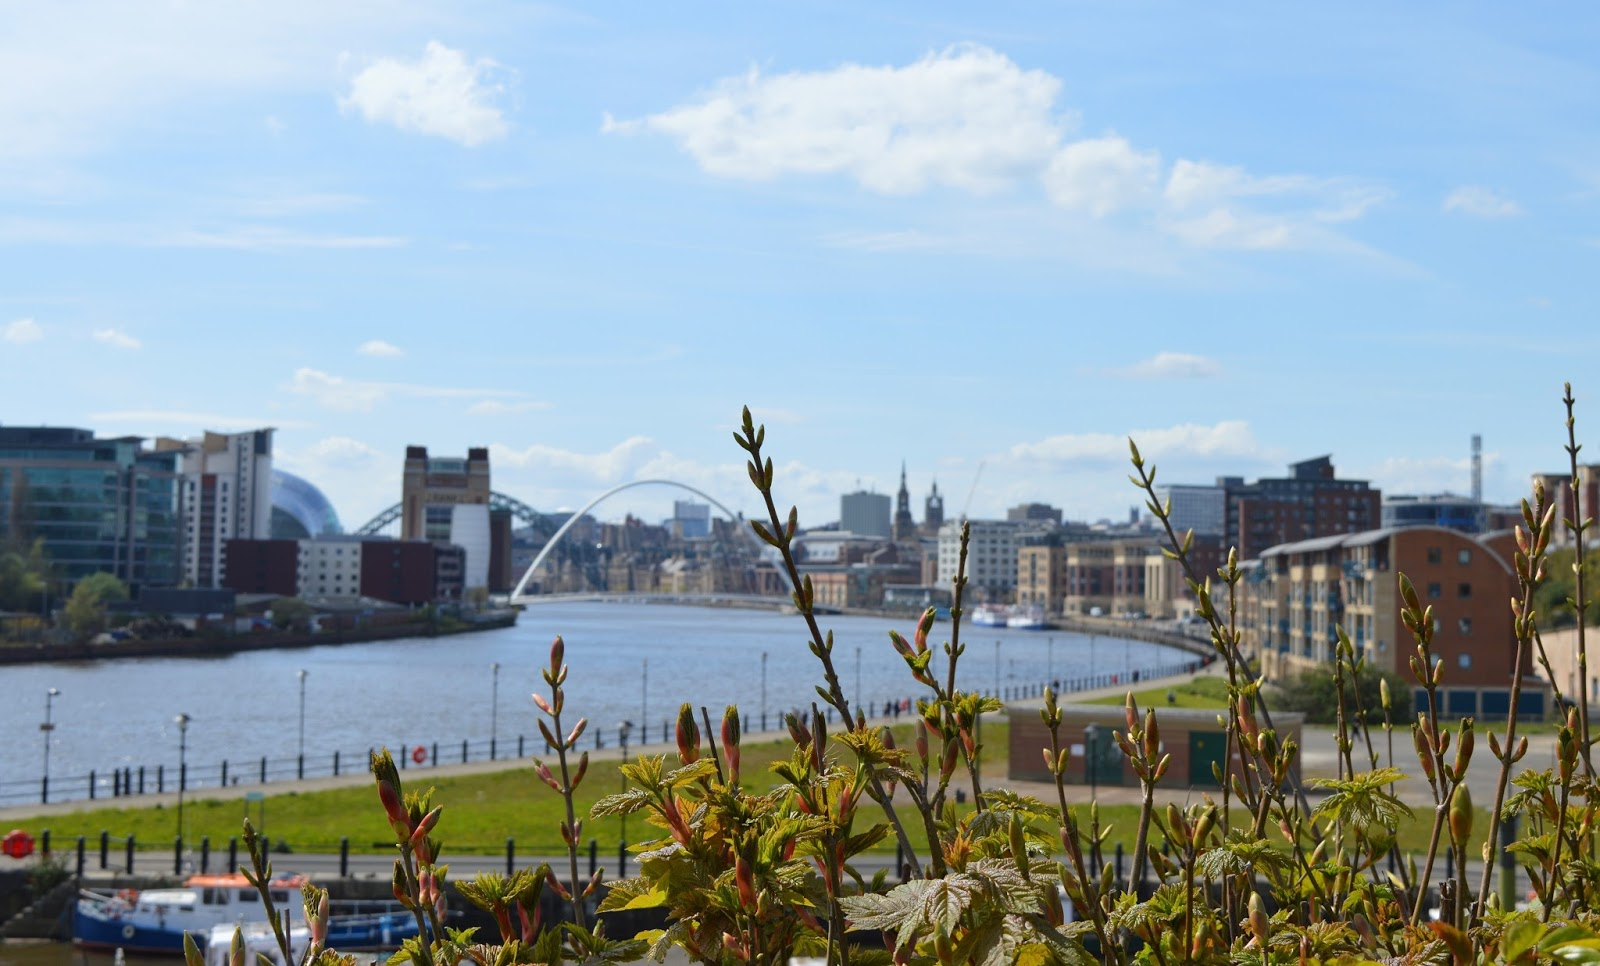 10 Places To Visit | Newcastle - Gateshead Quayside - Free Trade Inn Beer Garden View